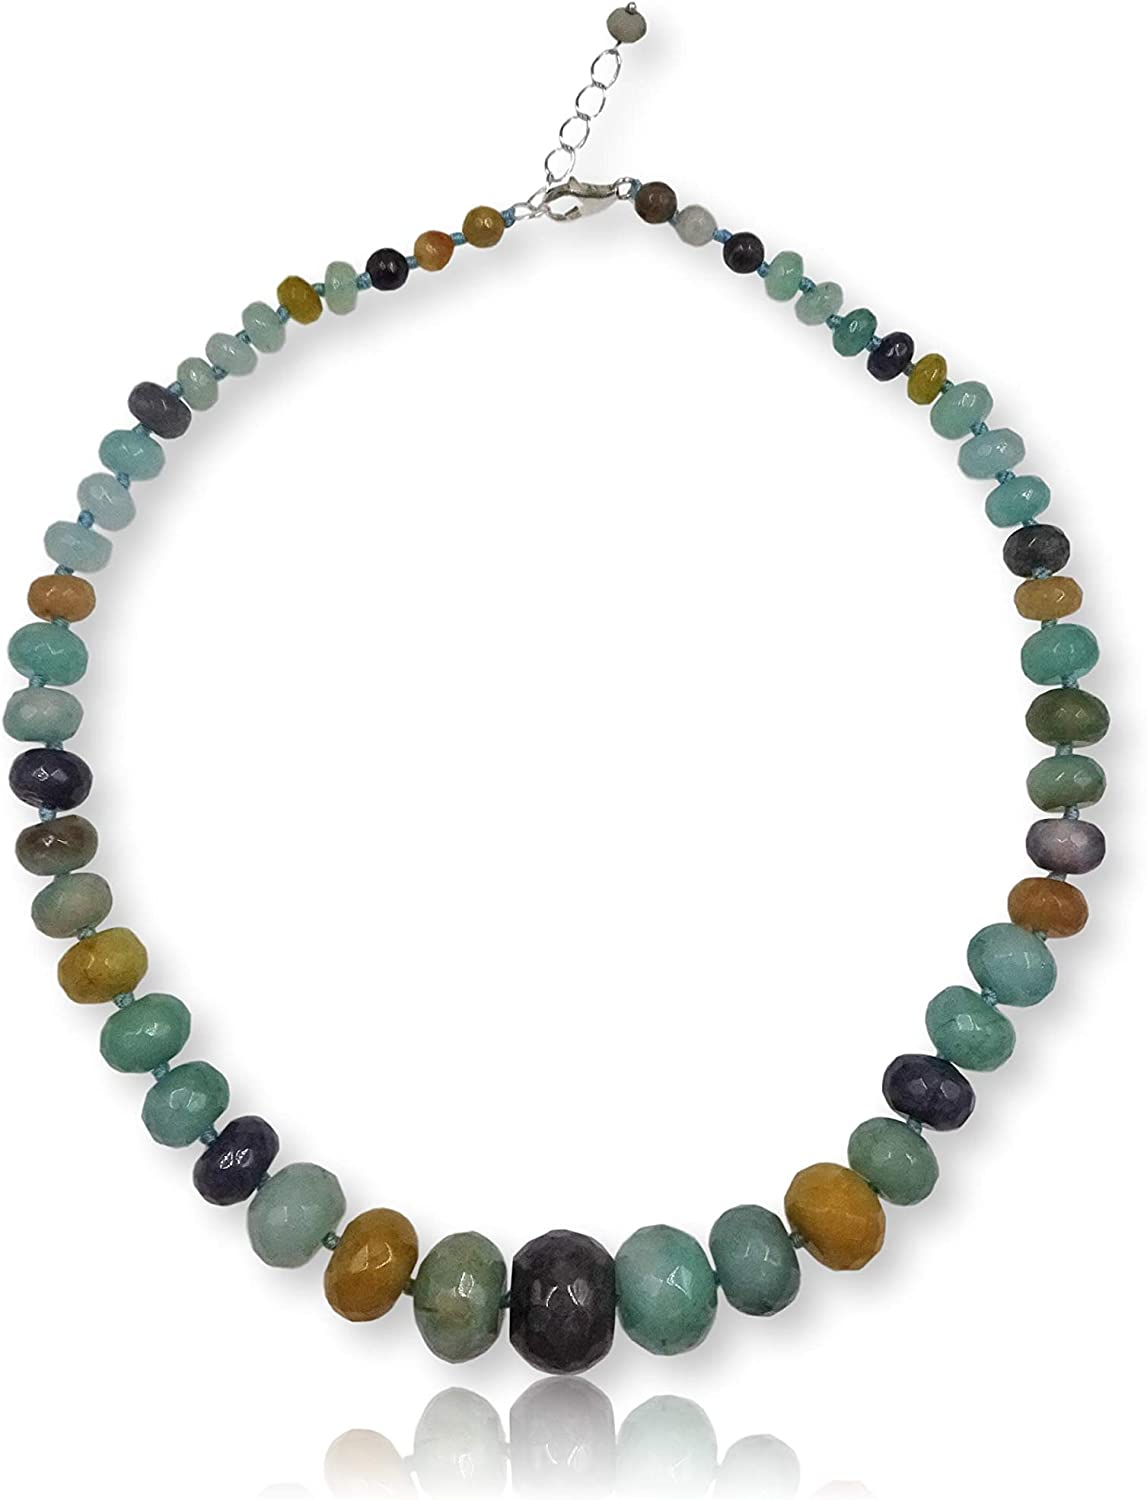 MGR MY GEMS ROCK! Genuine Amazonite Rondelle-Shape Beaded Collar Style Statement Strand Collar Necklace for Women